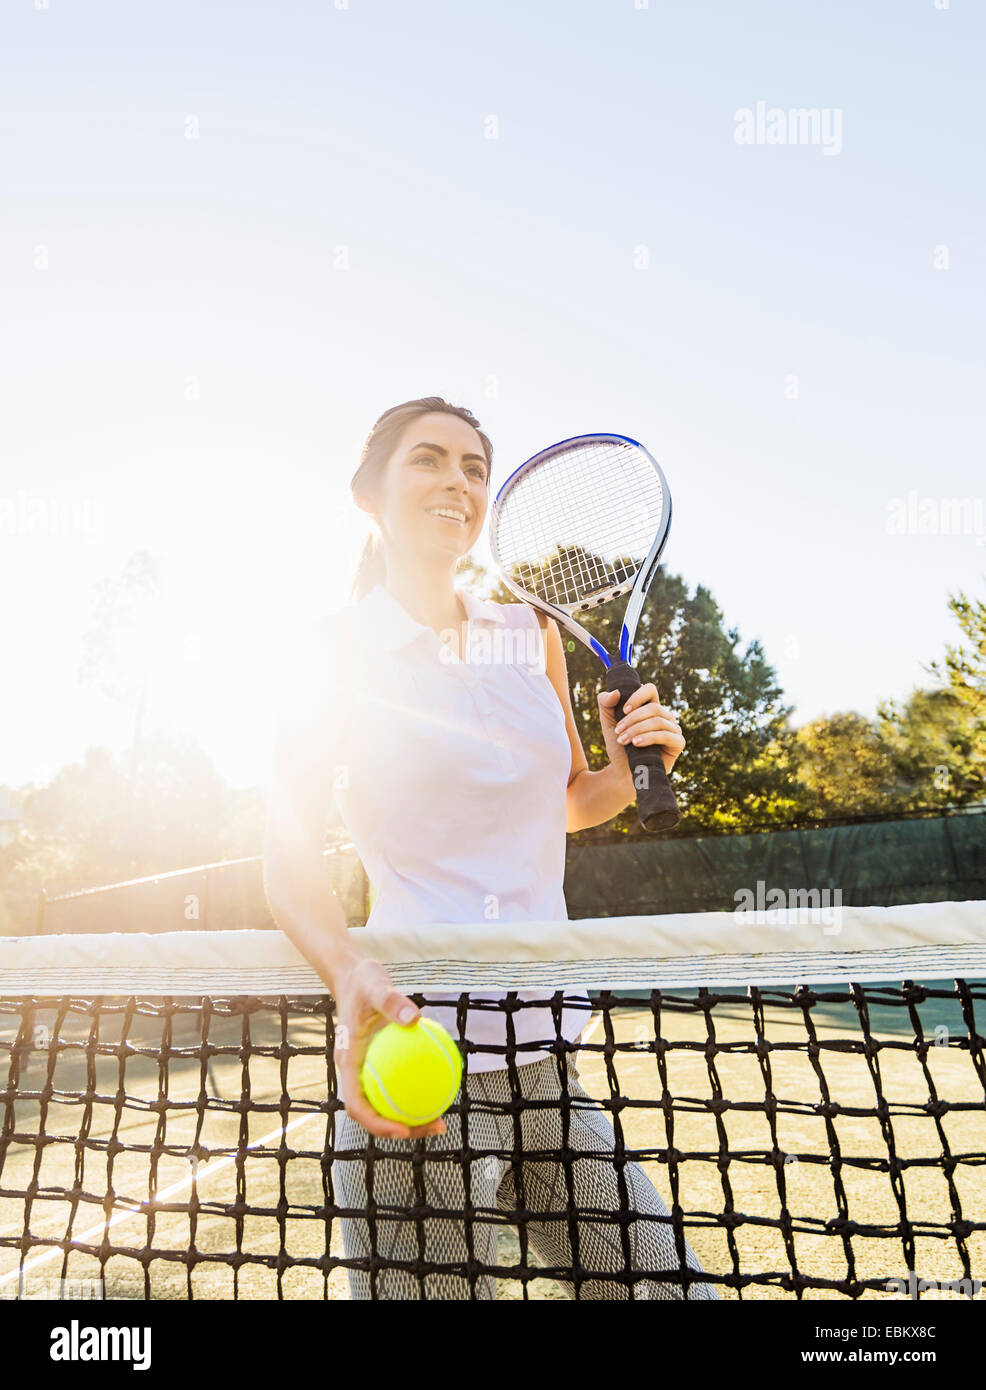 USA, Floride, Jupiter, Portrait of young woman standing by net, tenue et raquette de tennis balle de tennis Photo Stock